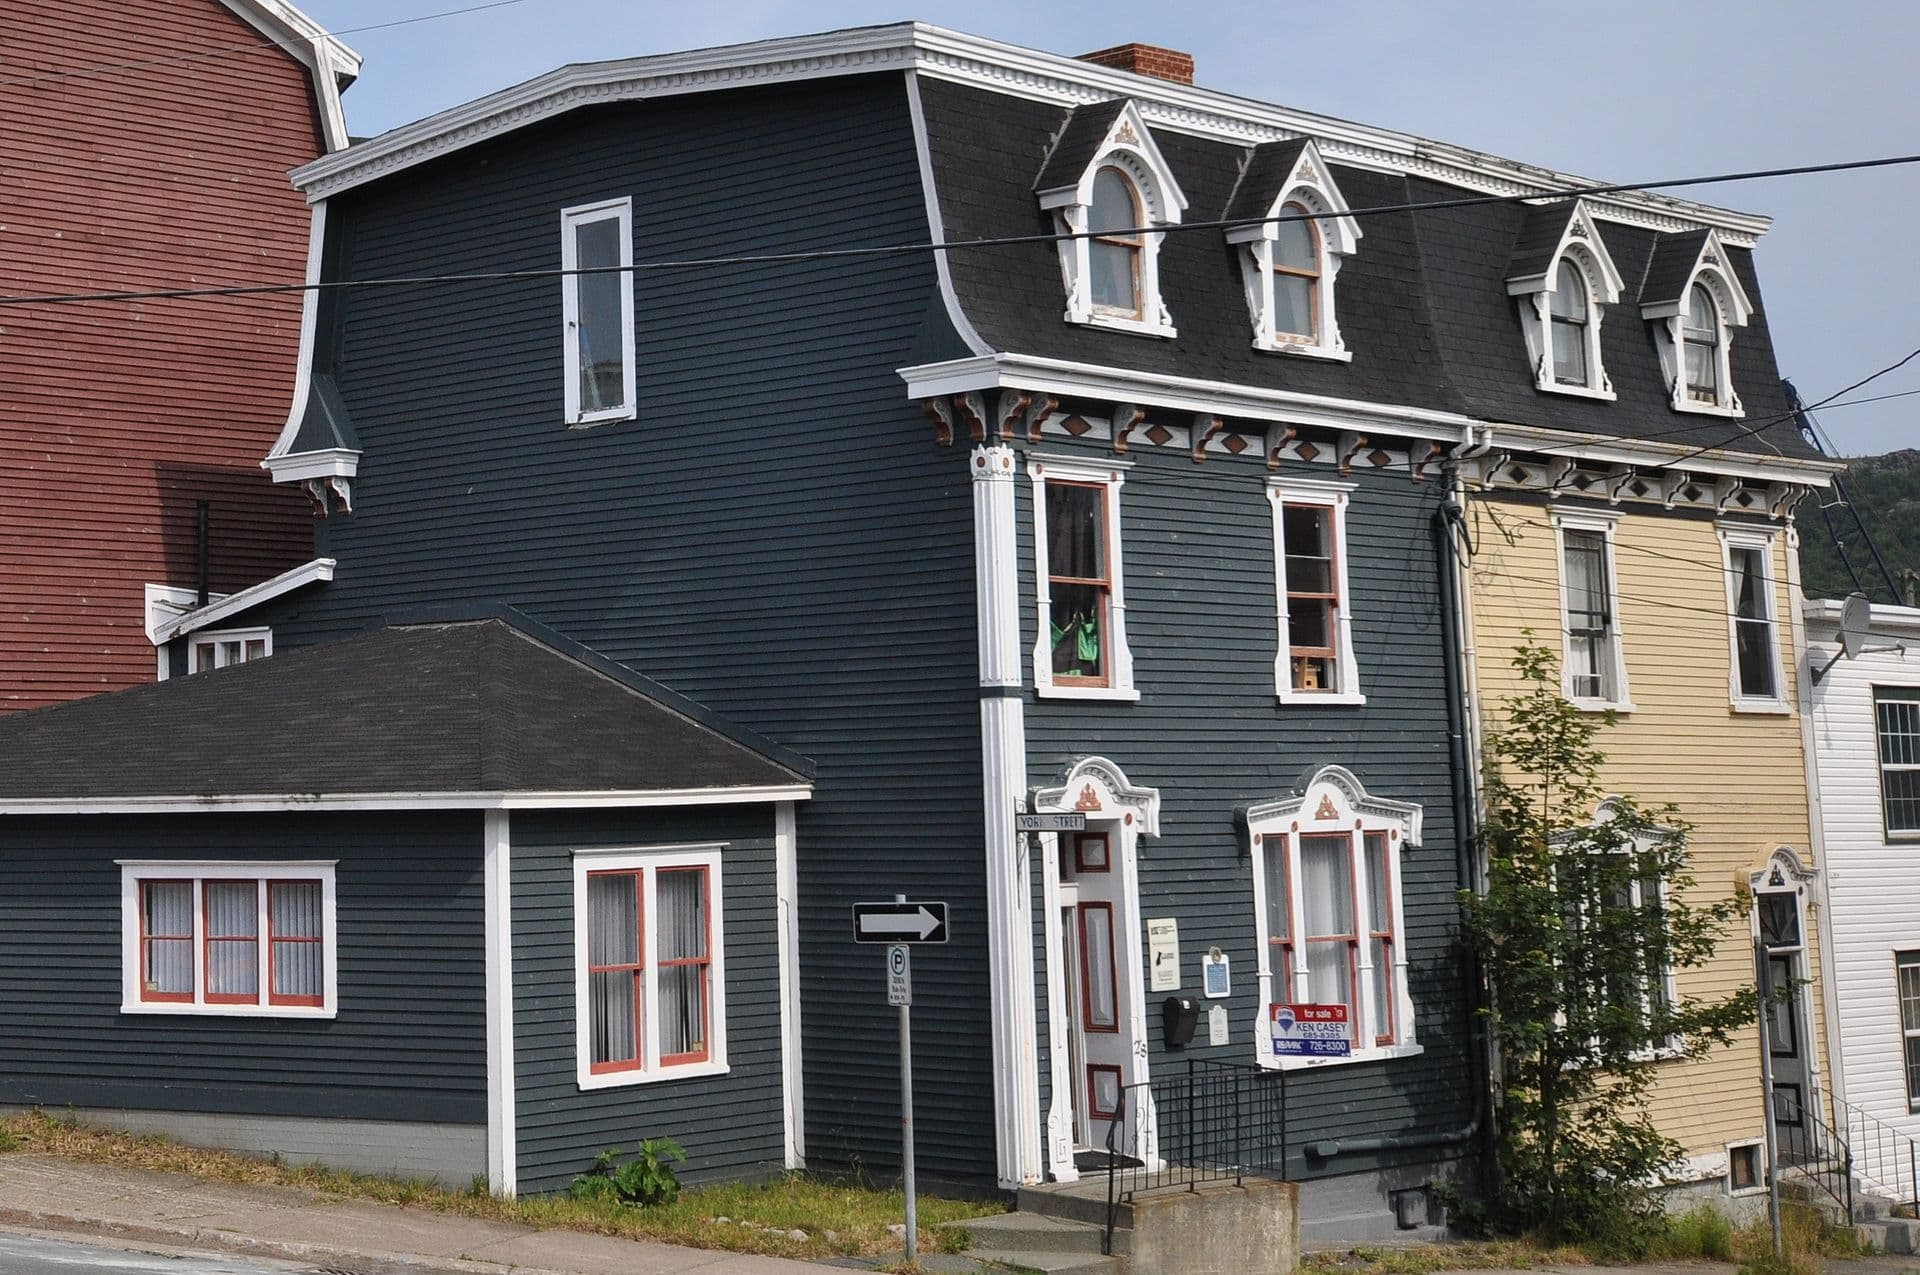 2nd empire style was the most common design Newfoundland architecture in the early 1900's